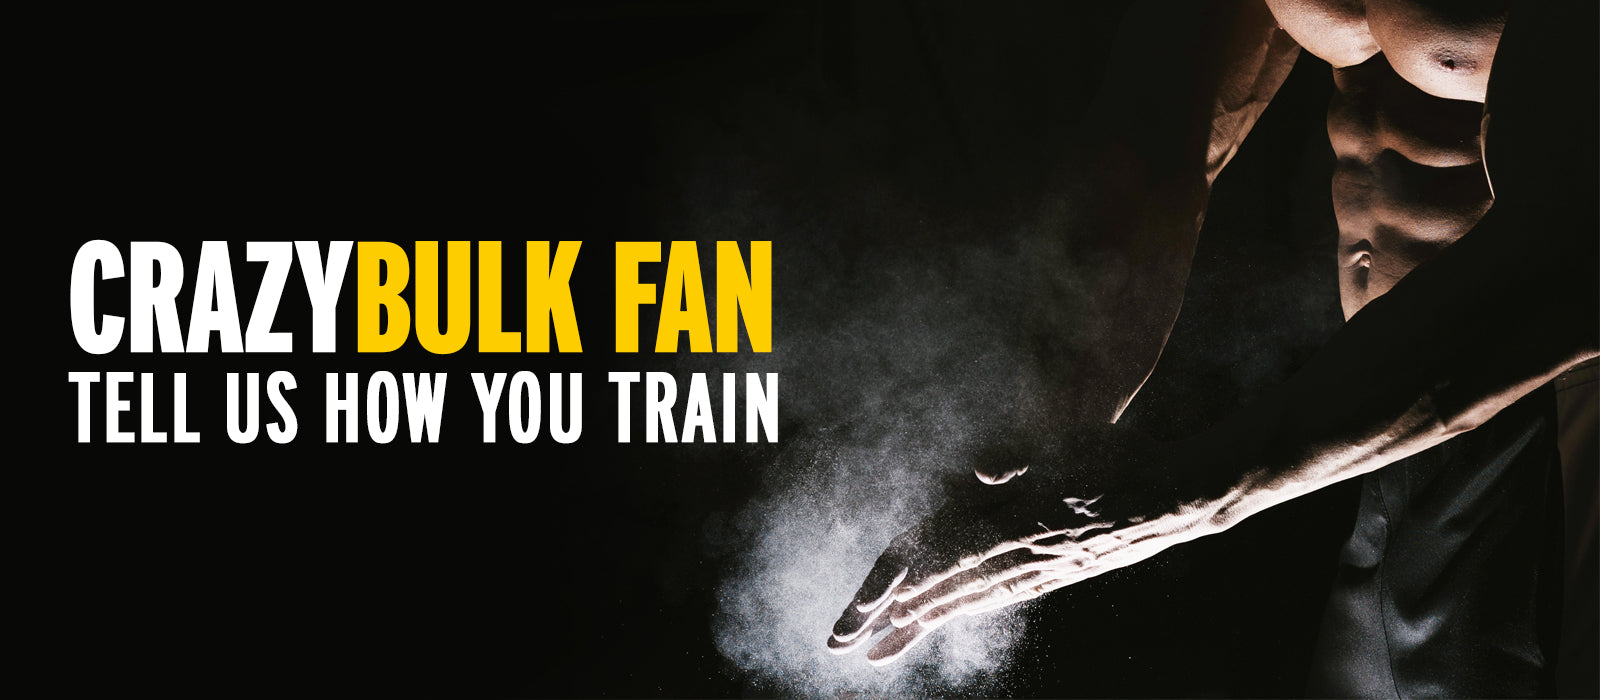 CrazyBulk Fan? Tell Us How You Train